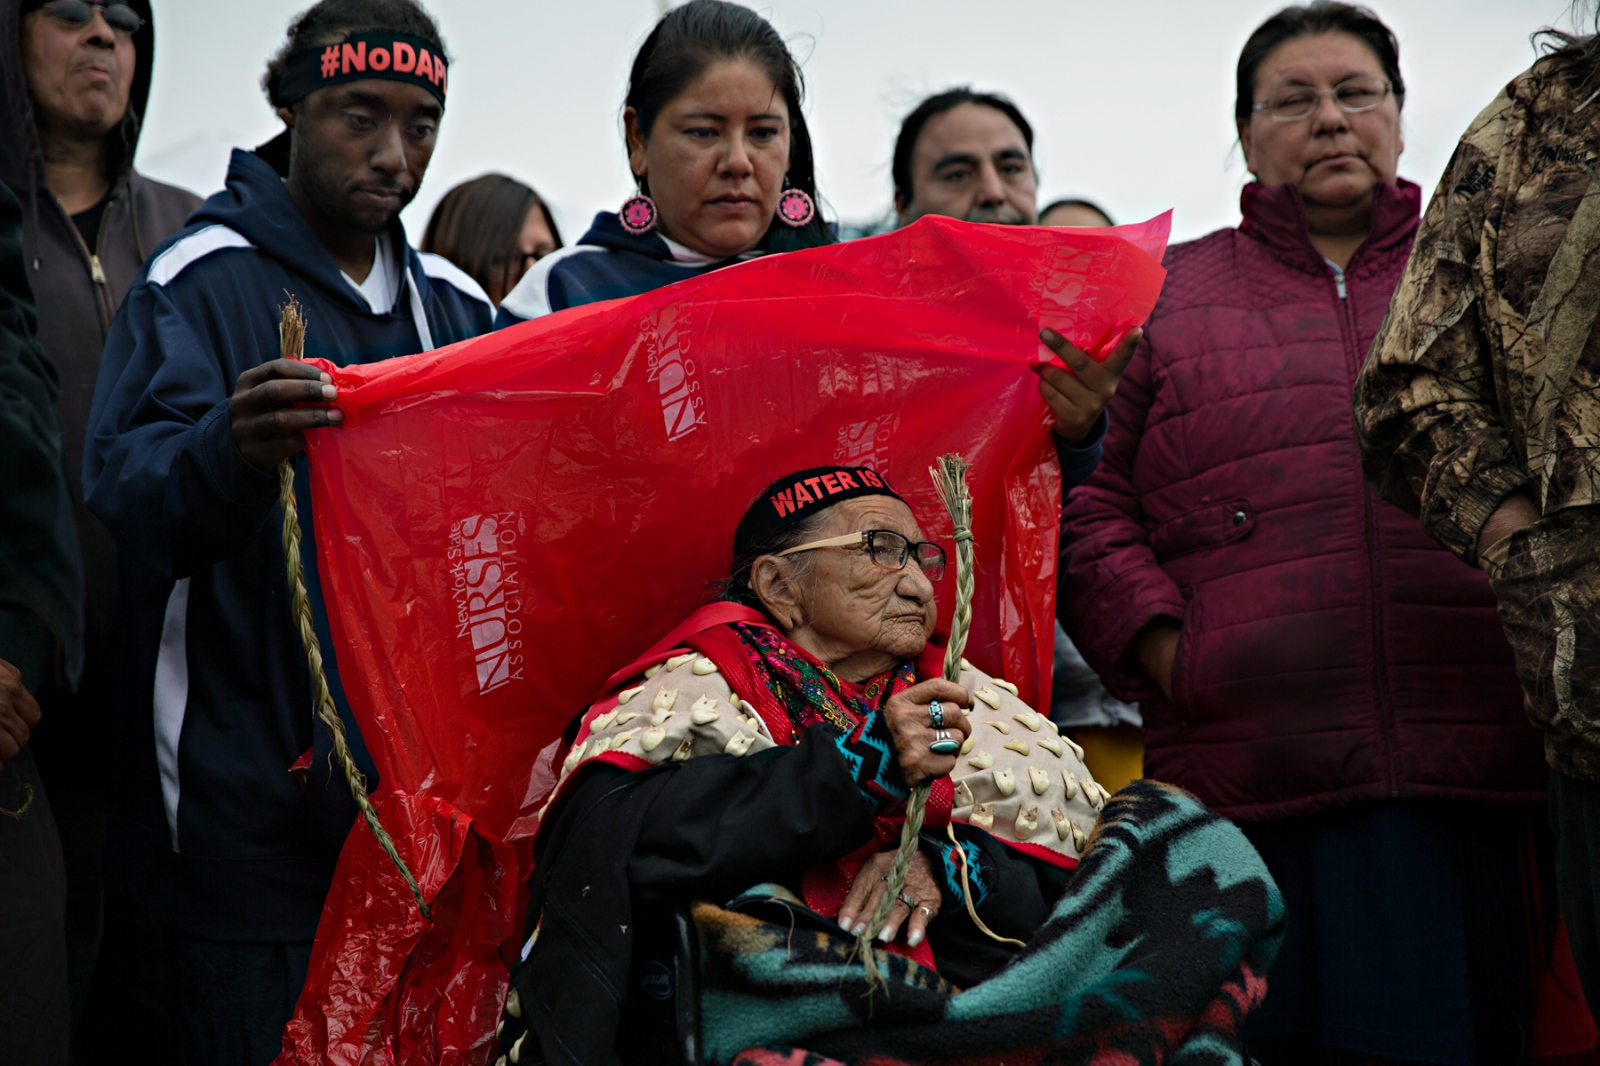 An 86 year old elder from the Sioux Tribe came to the gathering on her wheelchair after the Court denied the tribe's requested temporary restraining order against the Dakota Access Pipeline. While the Court ruled against the tribe's motion to halt the pipeline progress, the Obama Administration declared that it would stop construction until further consultation with the tribe--and action that appears to have been motivated by the intensity of the protests and the popular support they had generated.